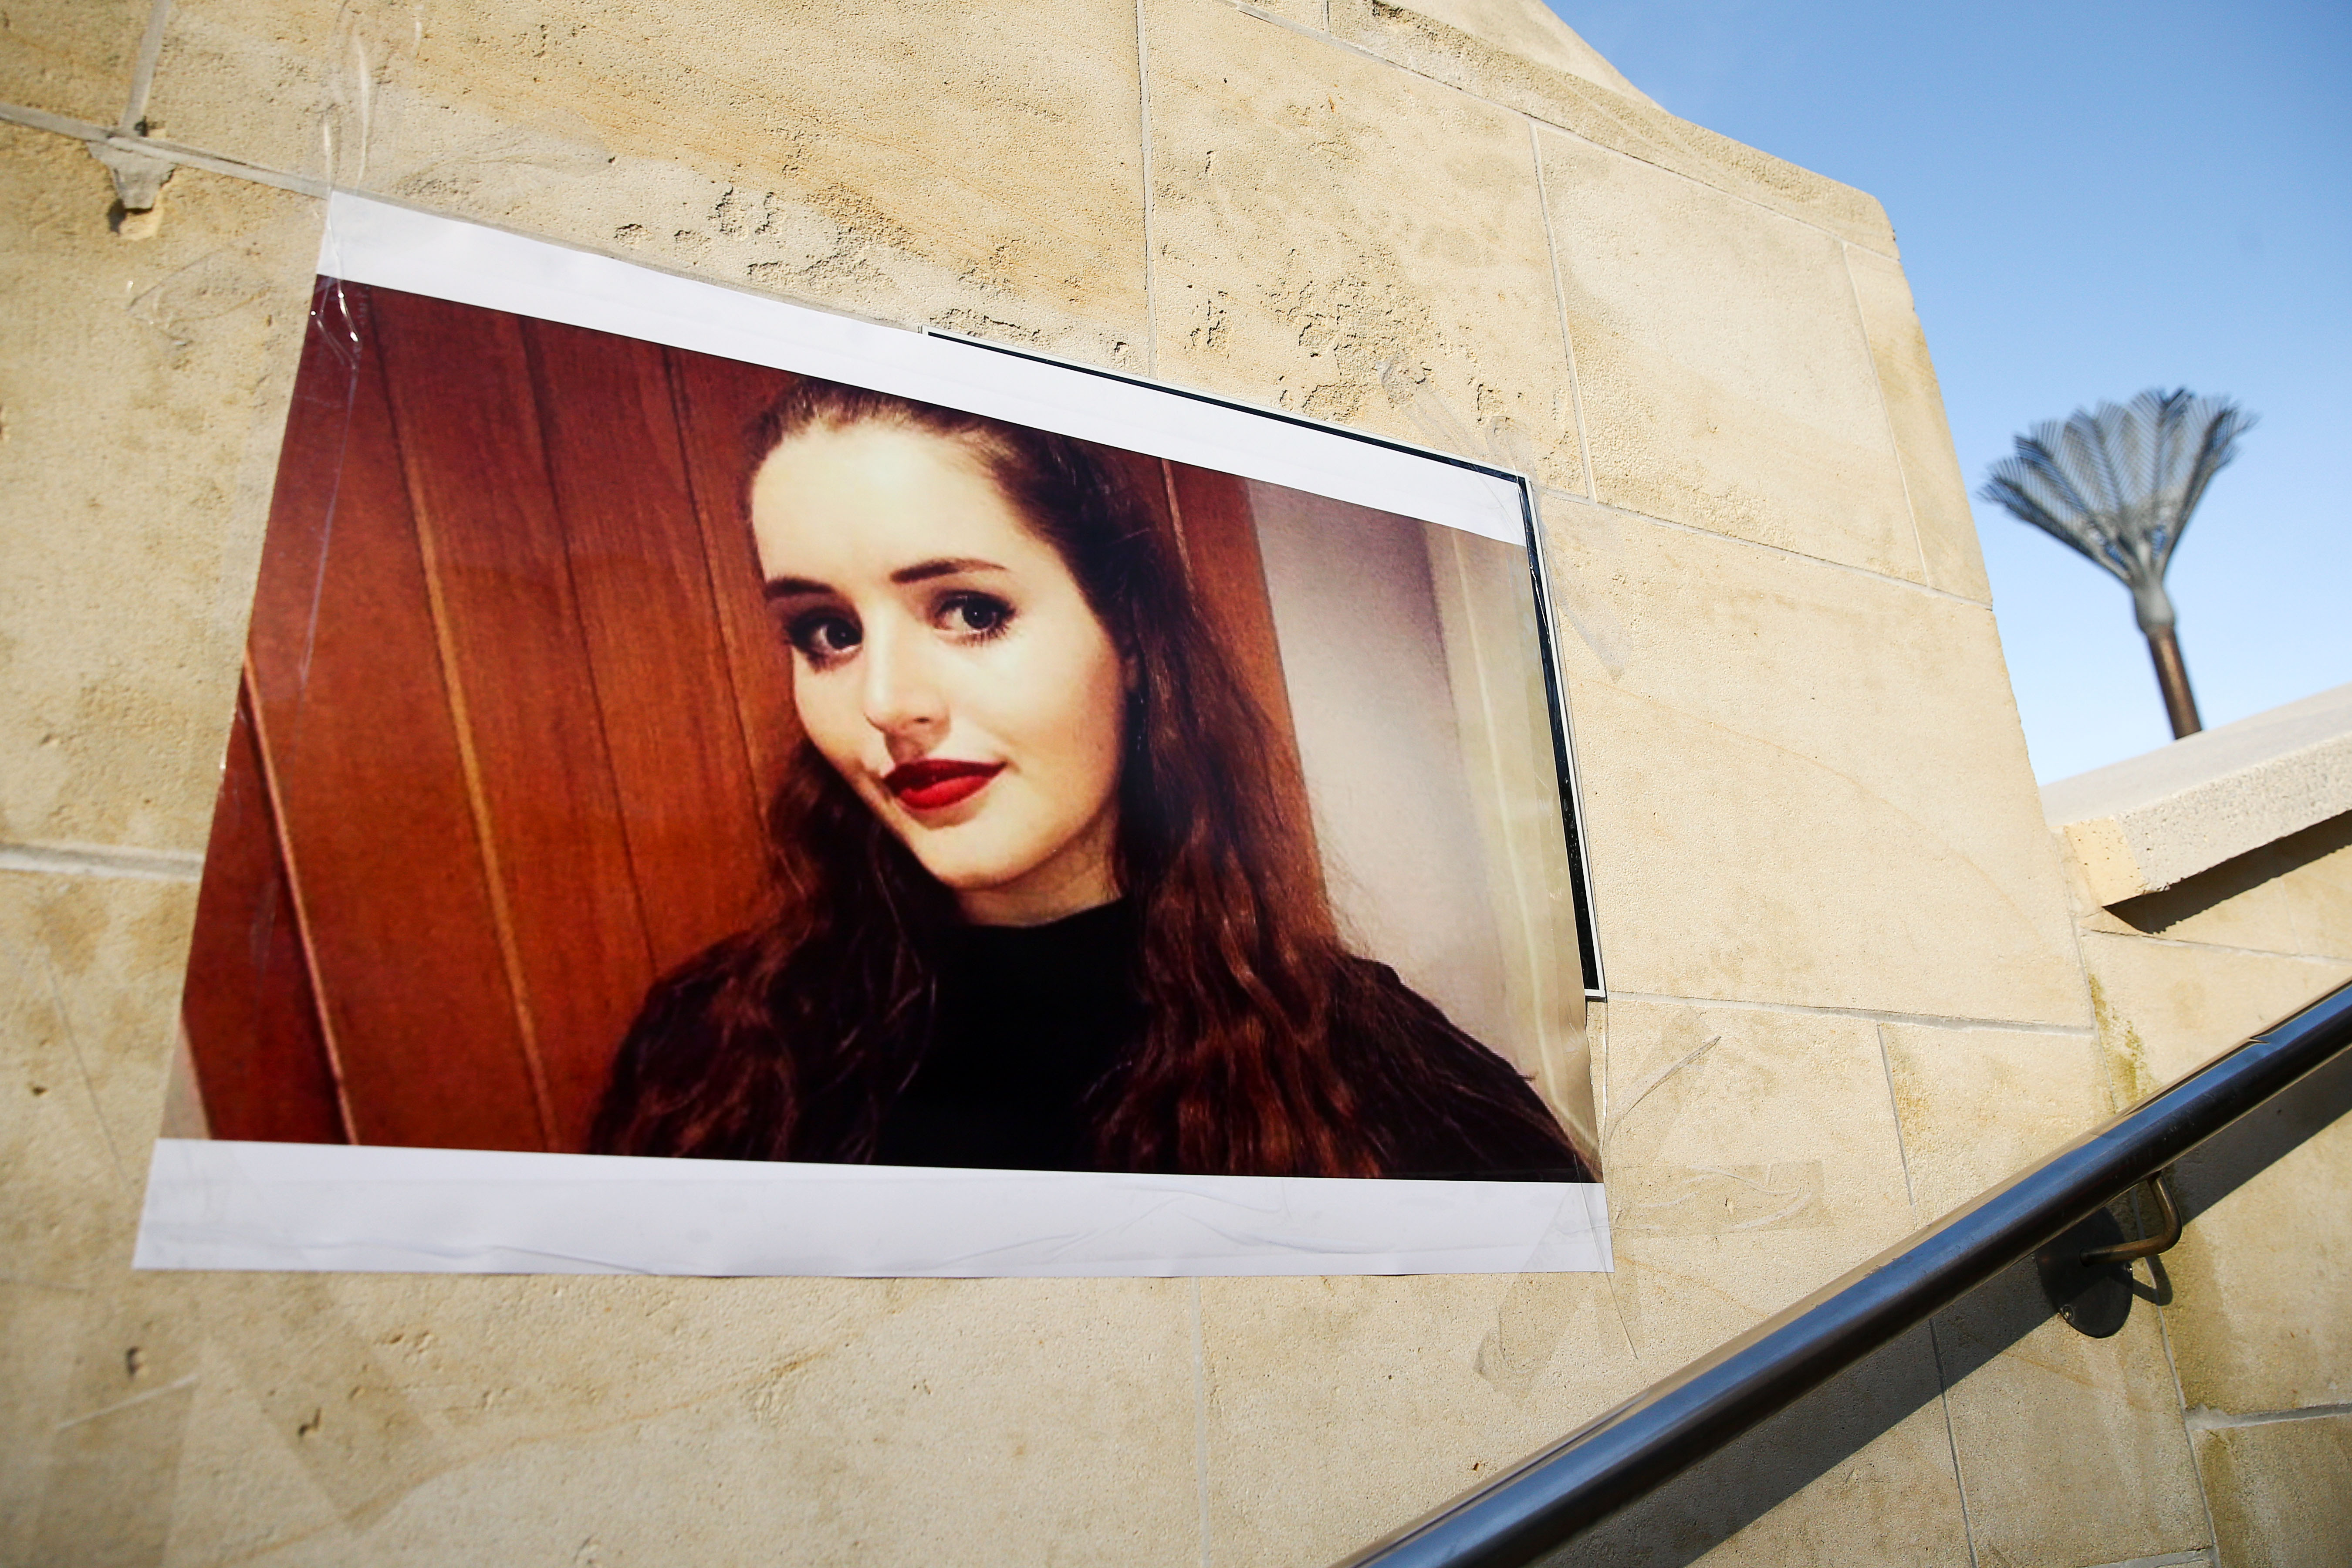 A photo of Grace Millane on the side of a building.